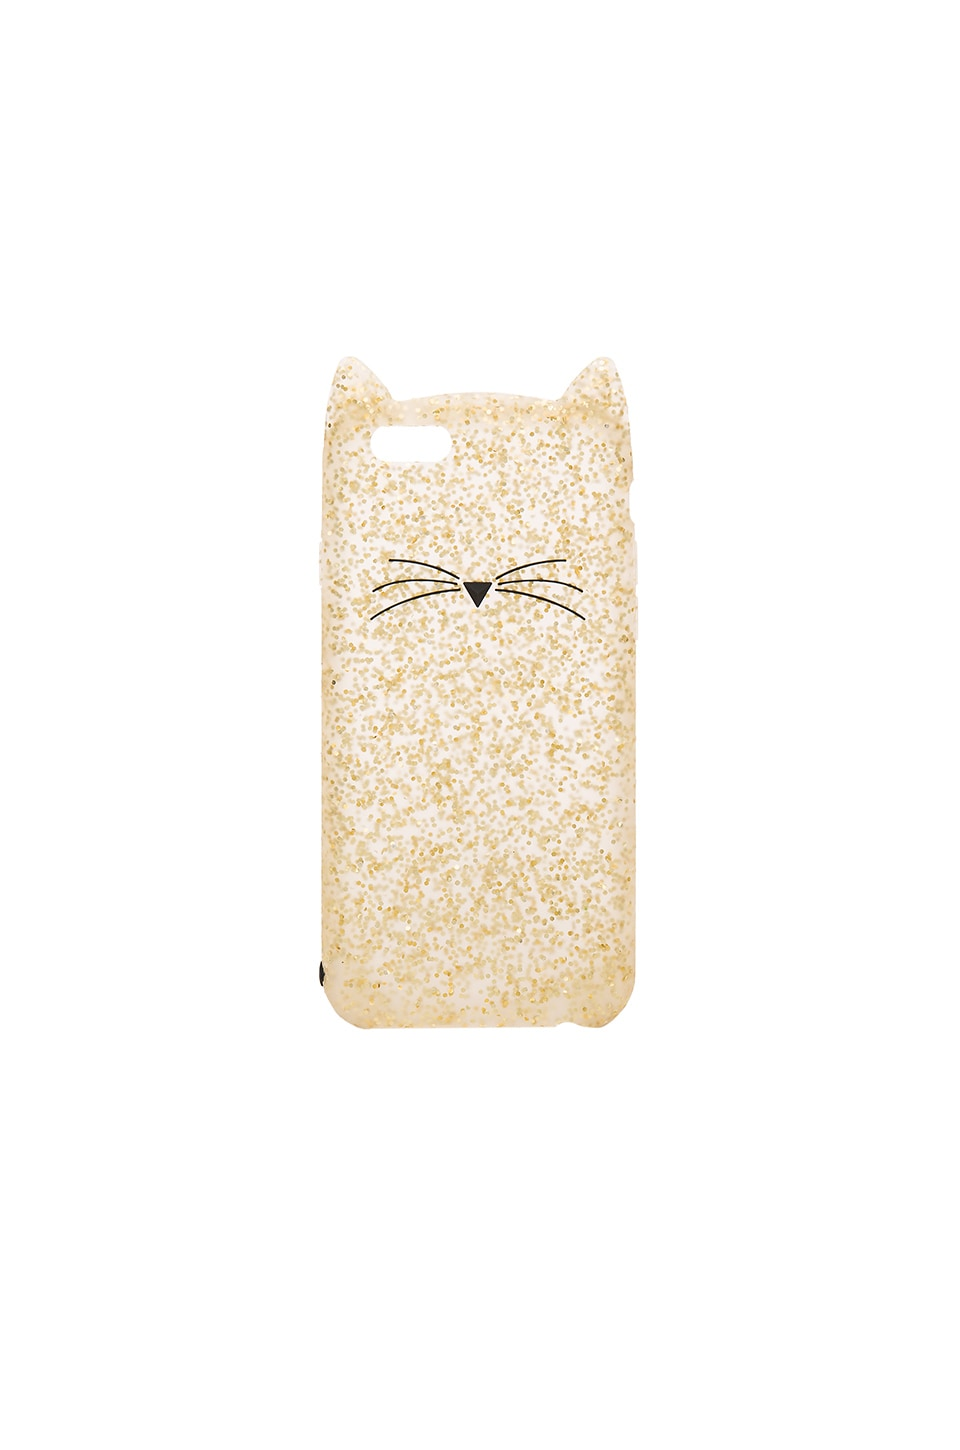 kate spade new york Glitter Cat iPhone 6/6s Case in Gold Glitter